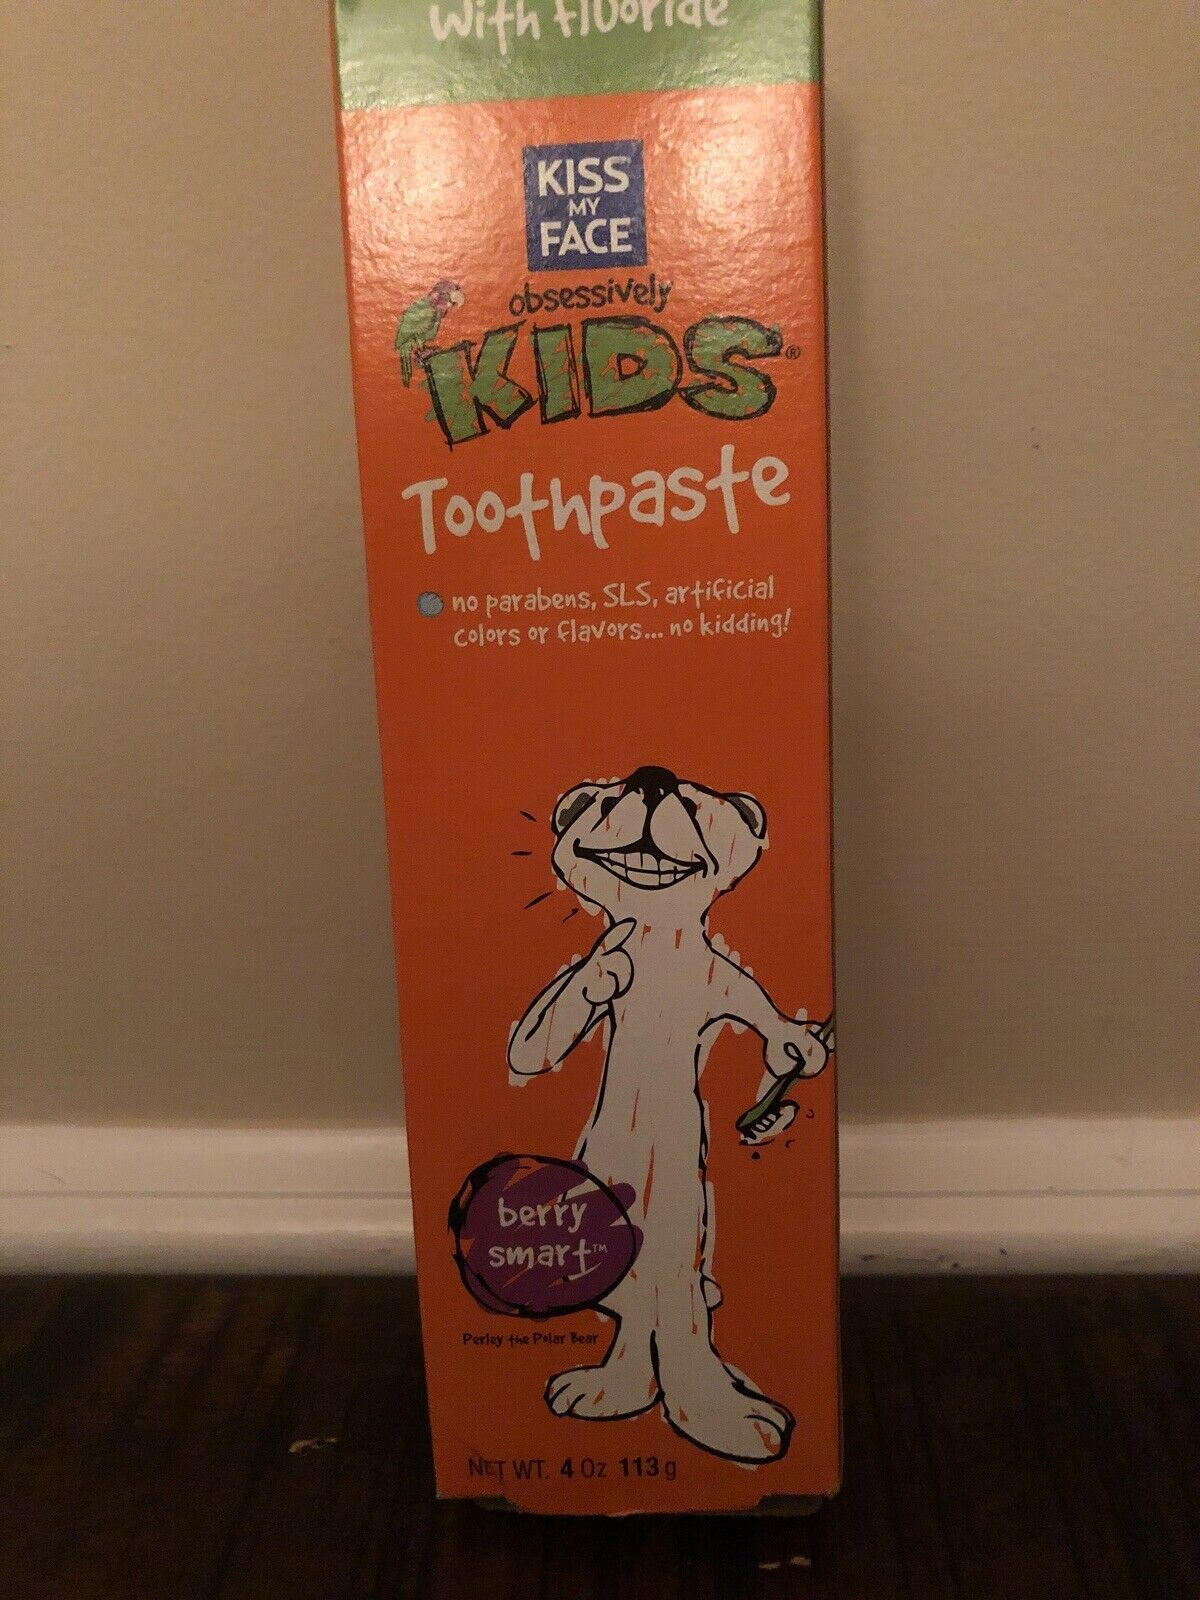 Primary image for Kiss My Face Gentle Toothpaste with Fluoride for Kids - 4 oz - Berry Smart